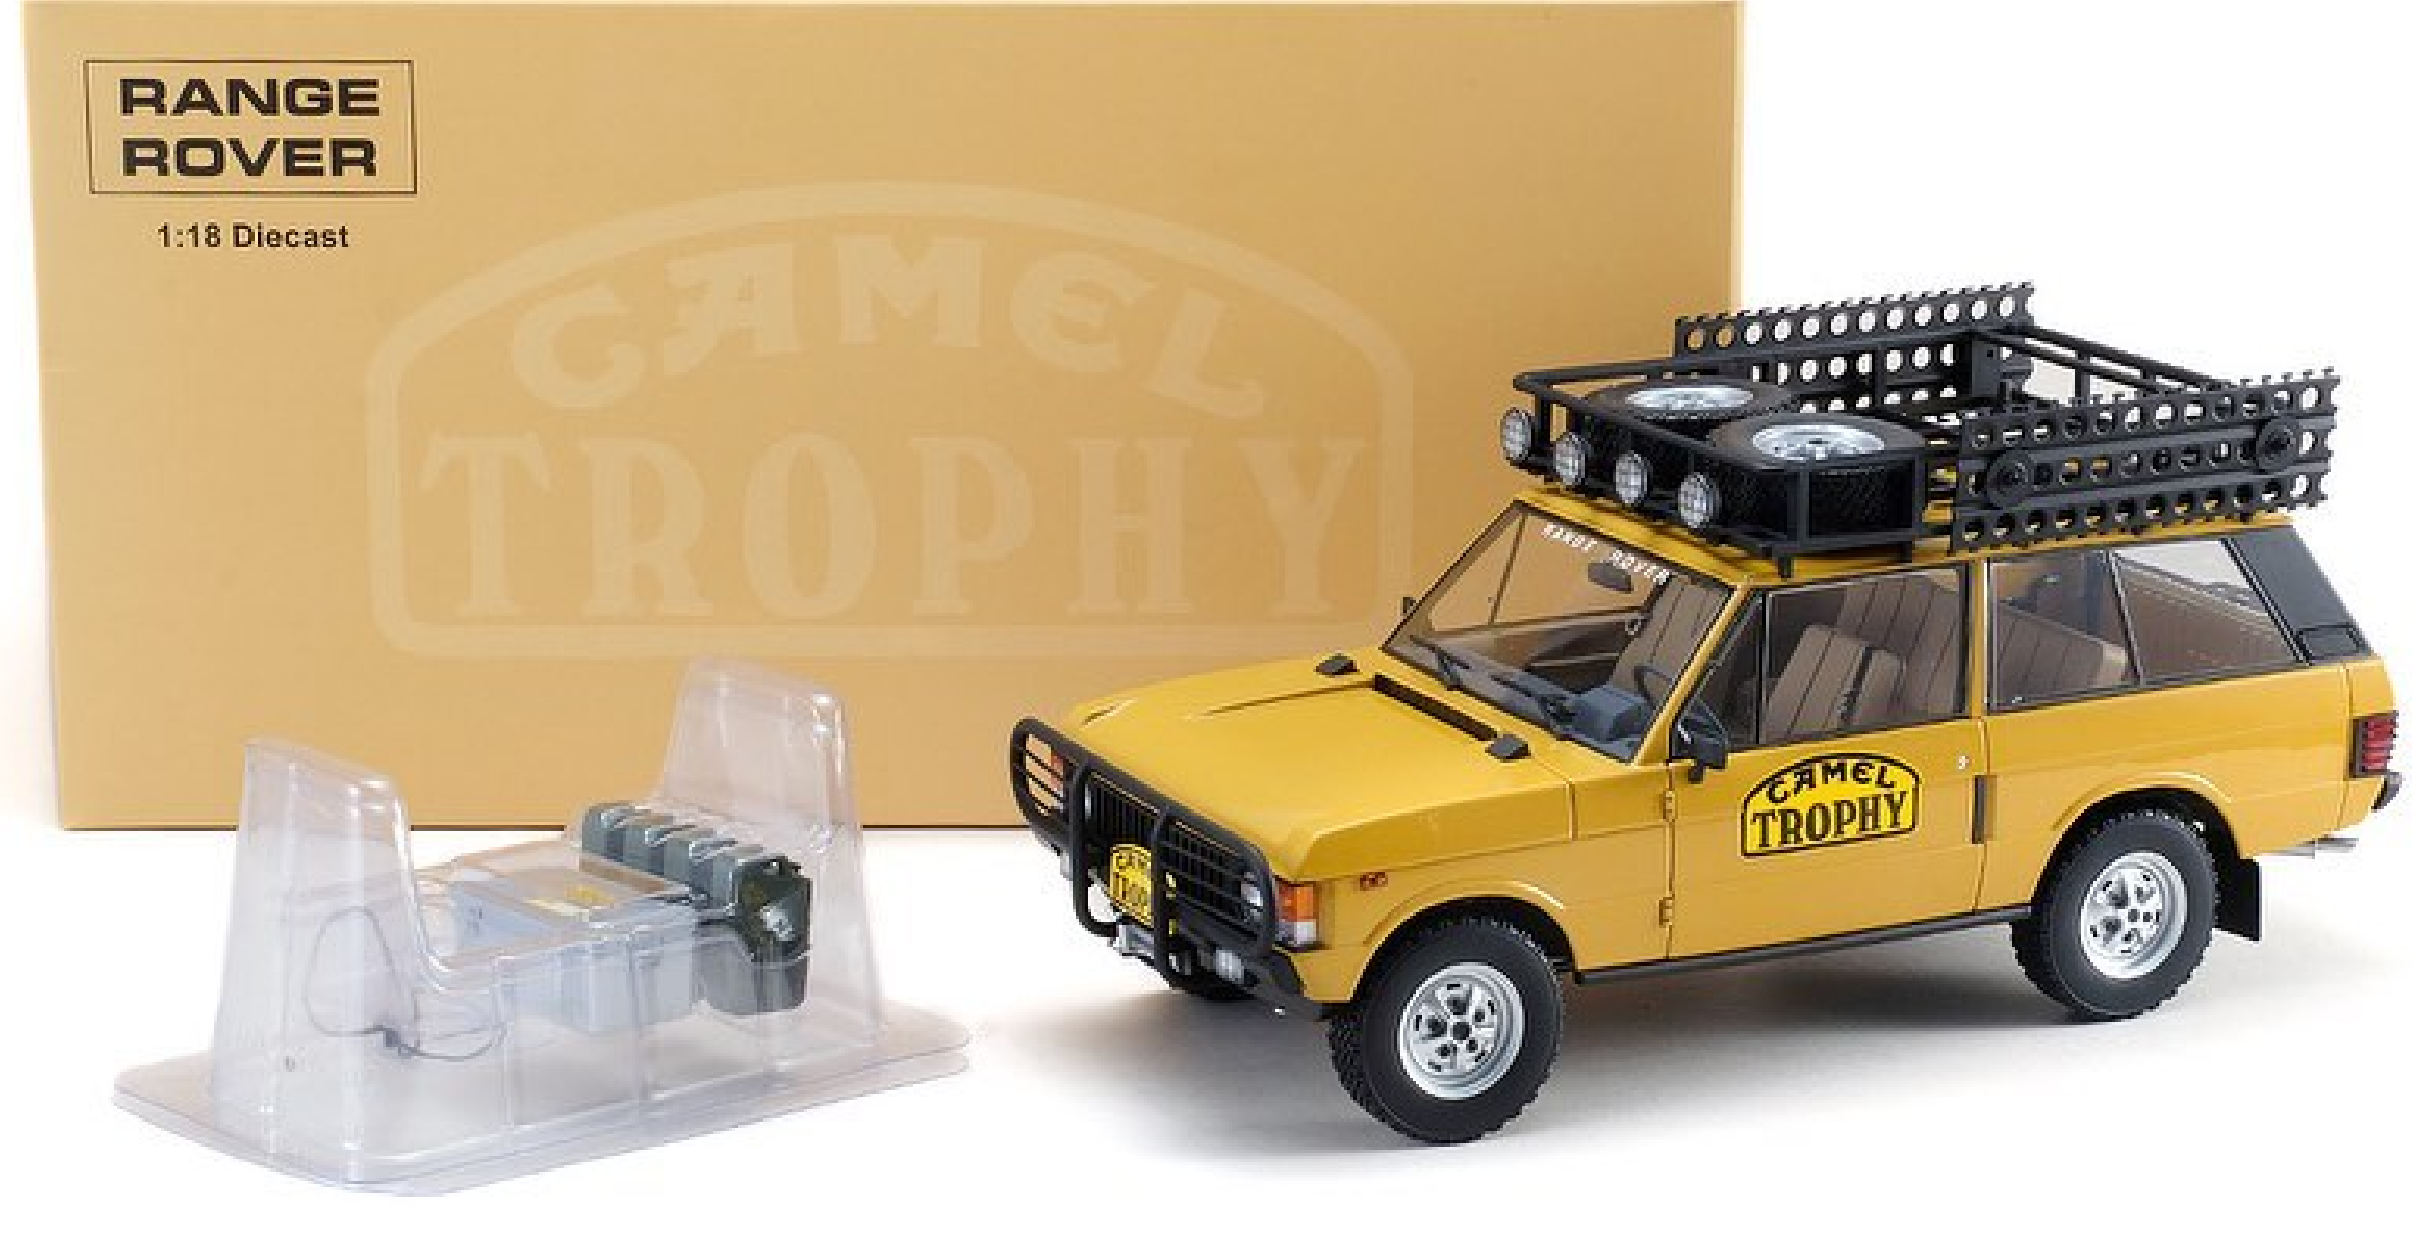 "Range Rover ""Camel Trophy"" Papua New Guinea - 1982 1/18"